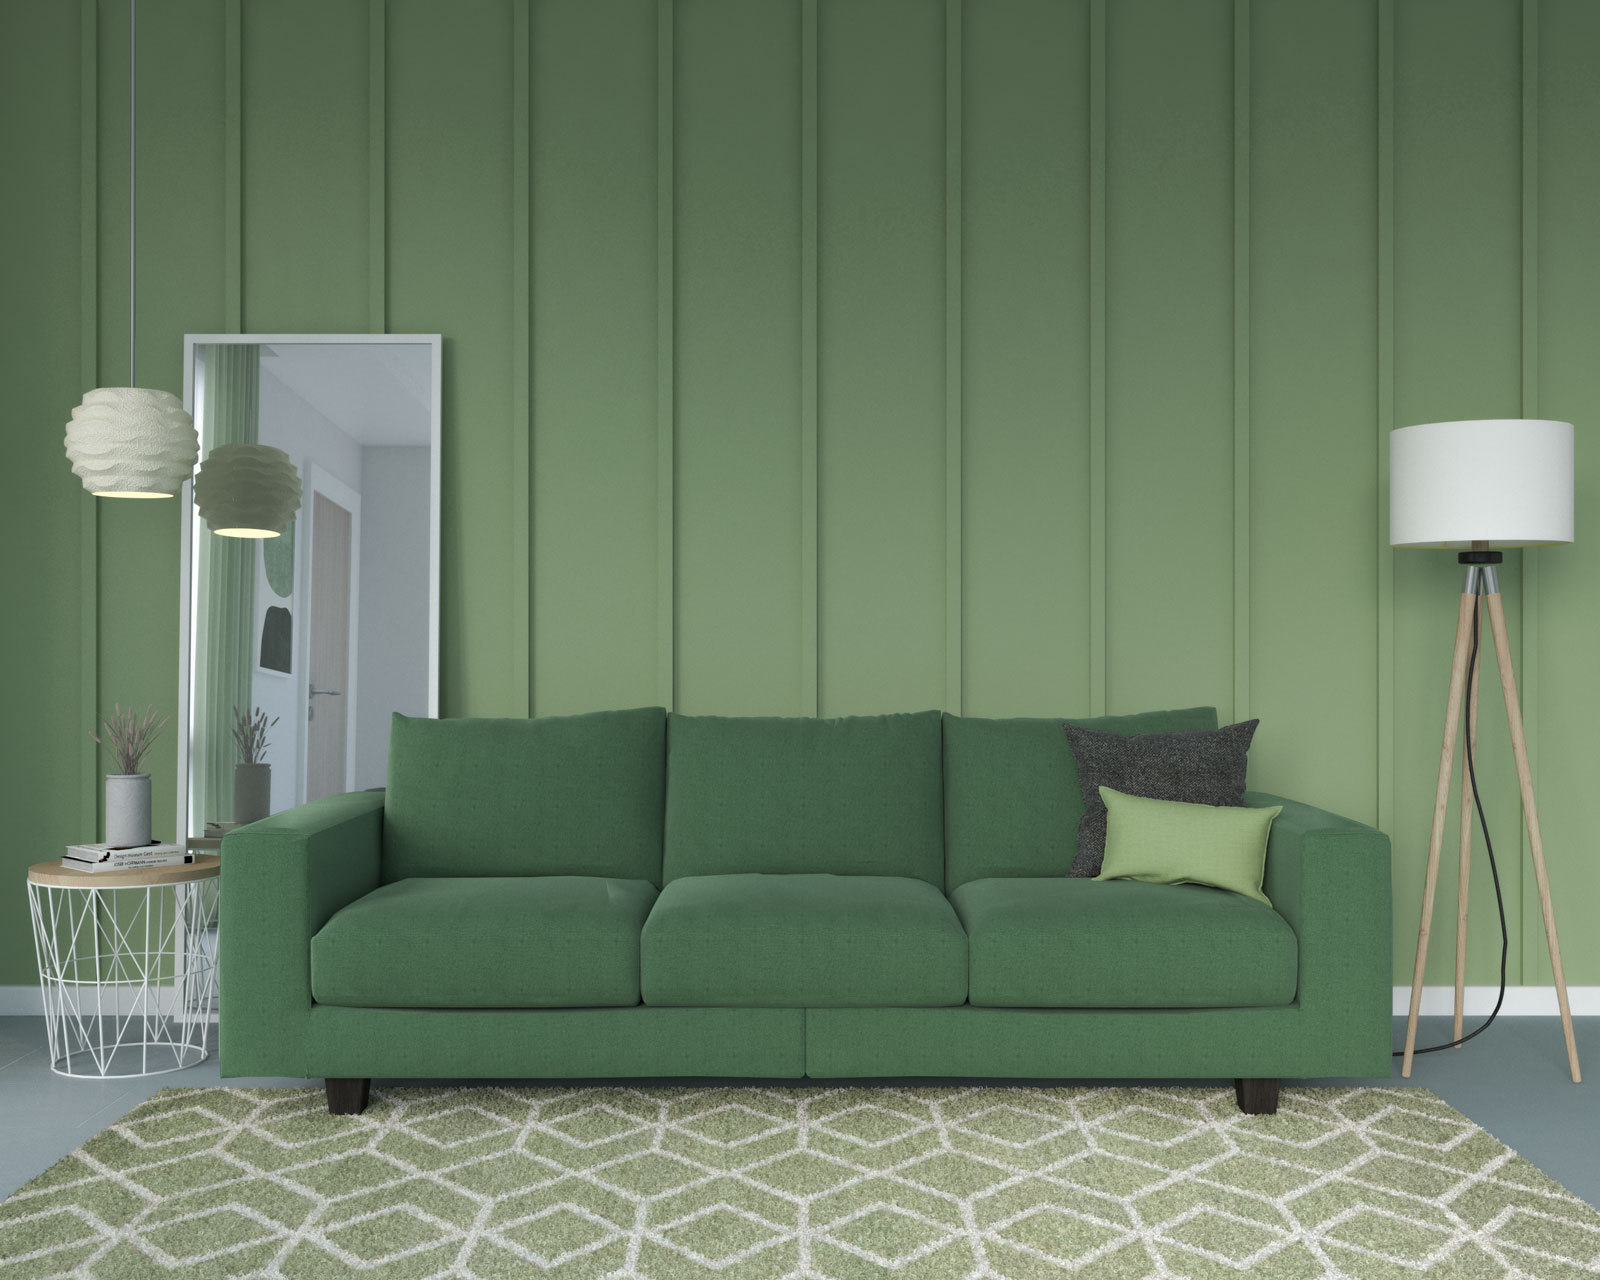 Emerald couch with sage wall